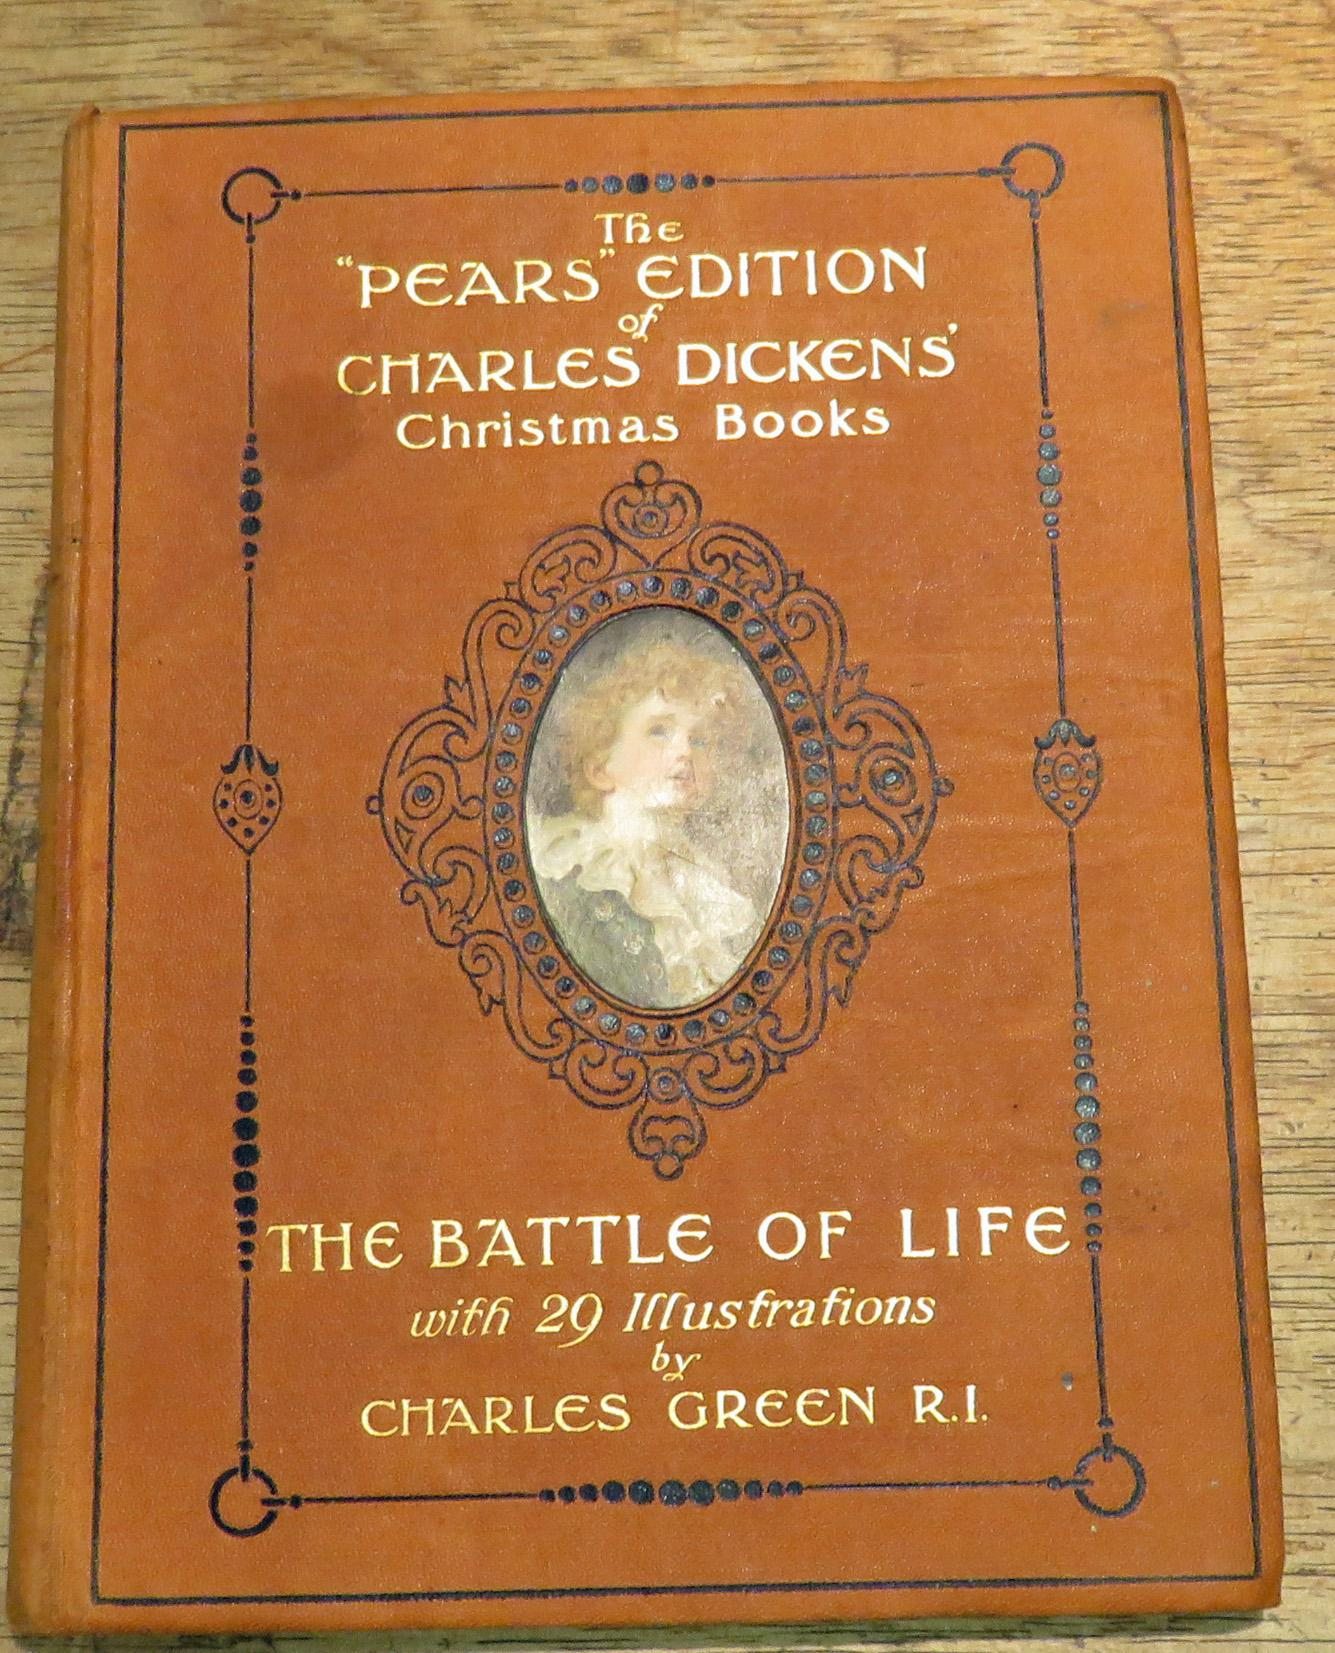 Pears' Centenary Edition of Charles Dickens' Christmas Books